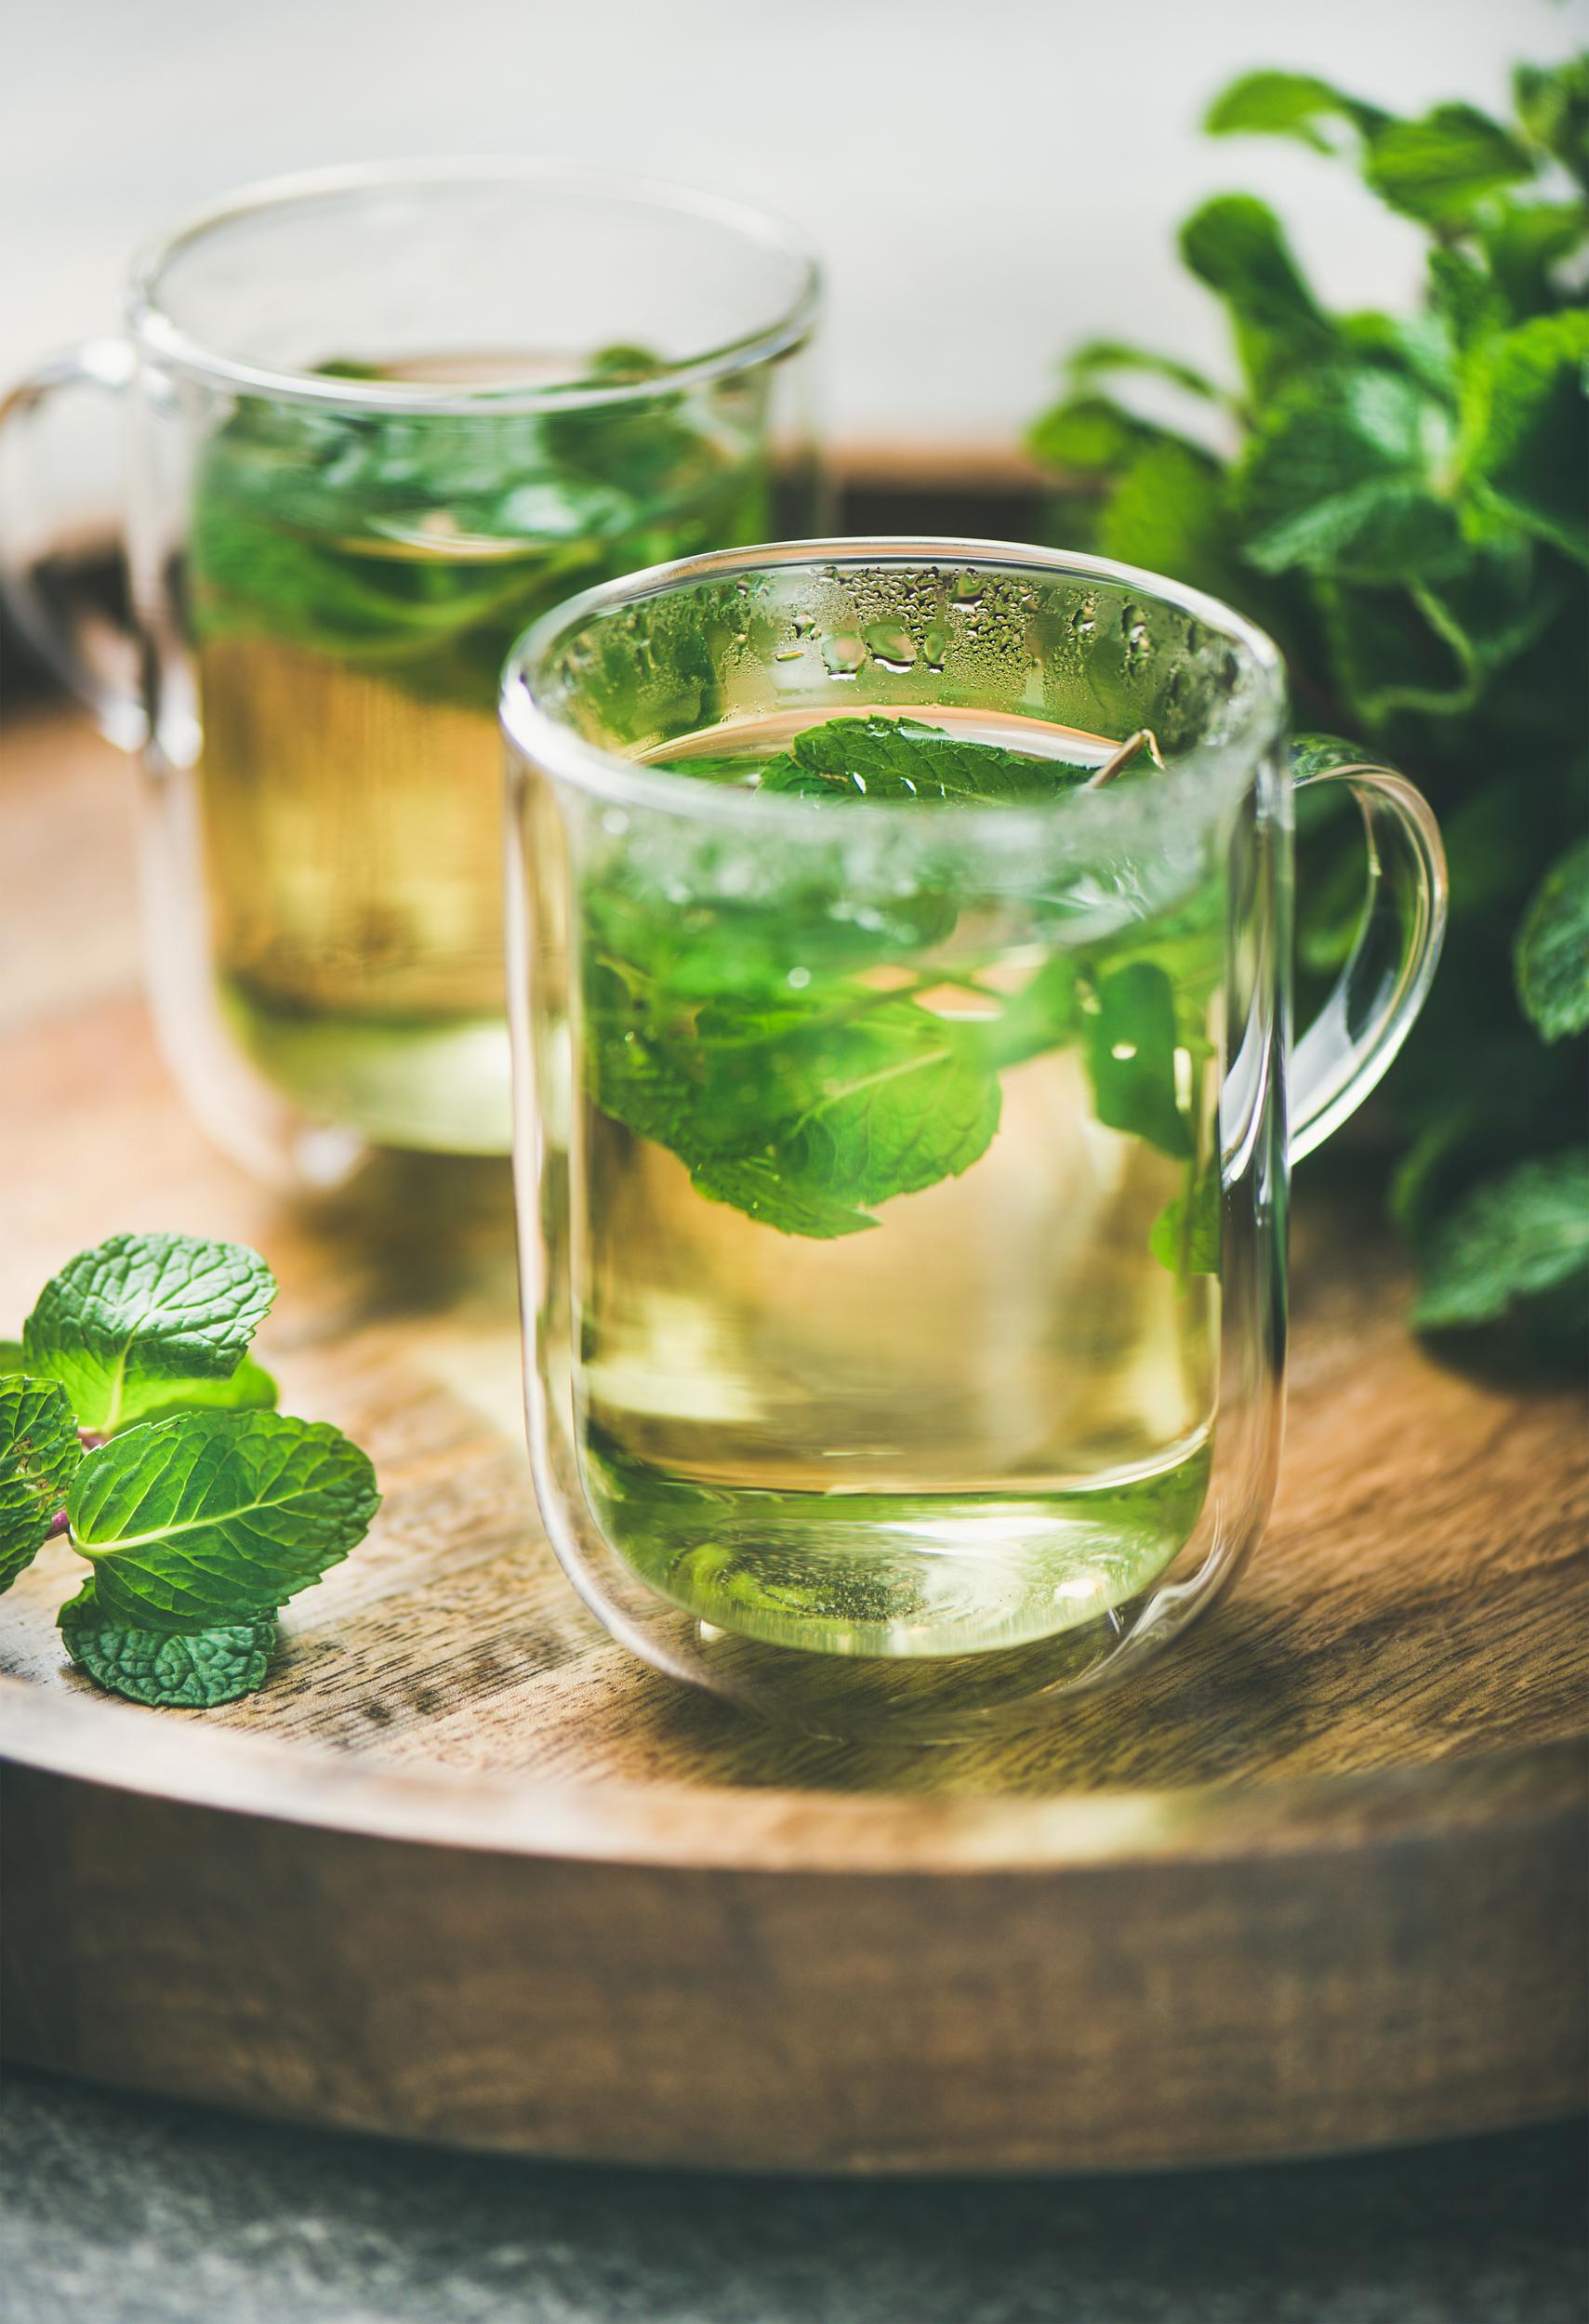 Hot herbal mint tea drink in glass mugs over wooden tray with fresh garden mint, selective focus